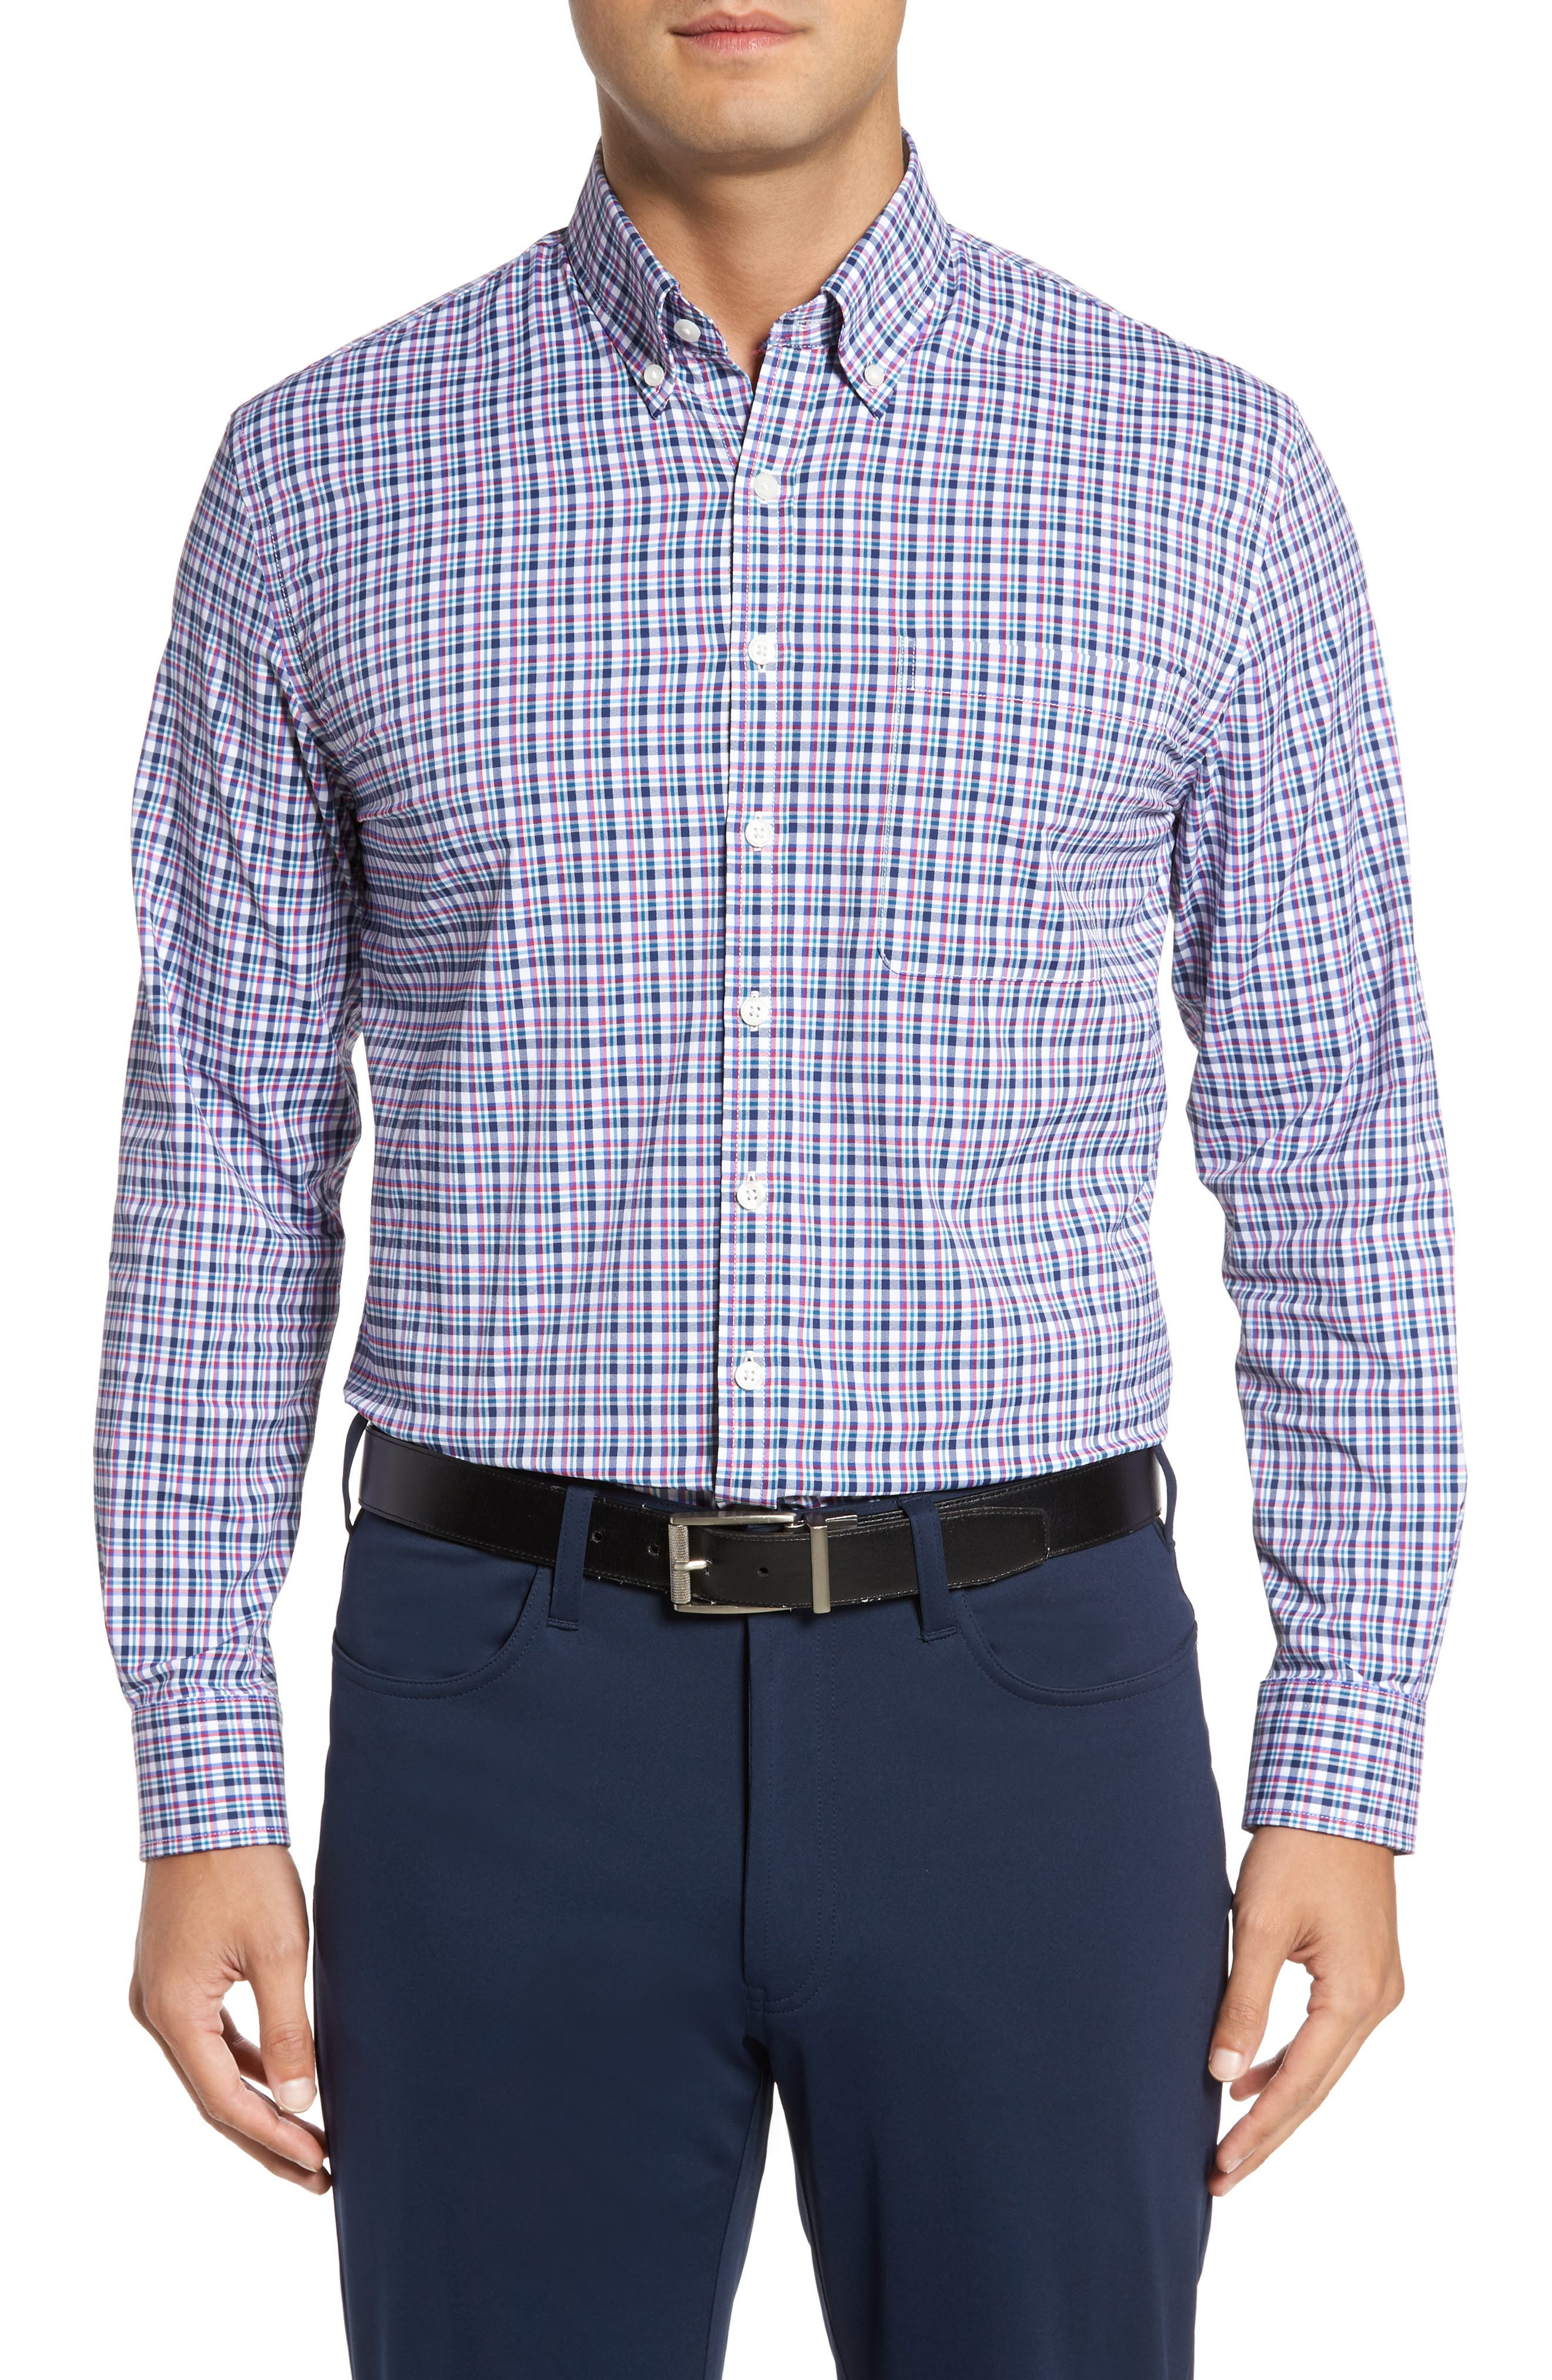 Matthers Easy Care Plaid Sport Shirt,                             Main thumbnail 1, color,                             490